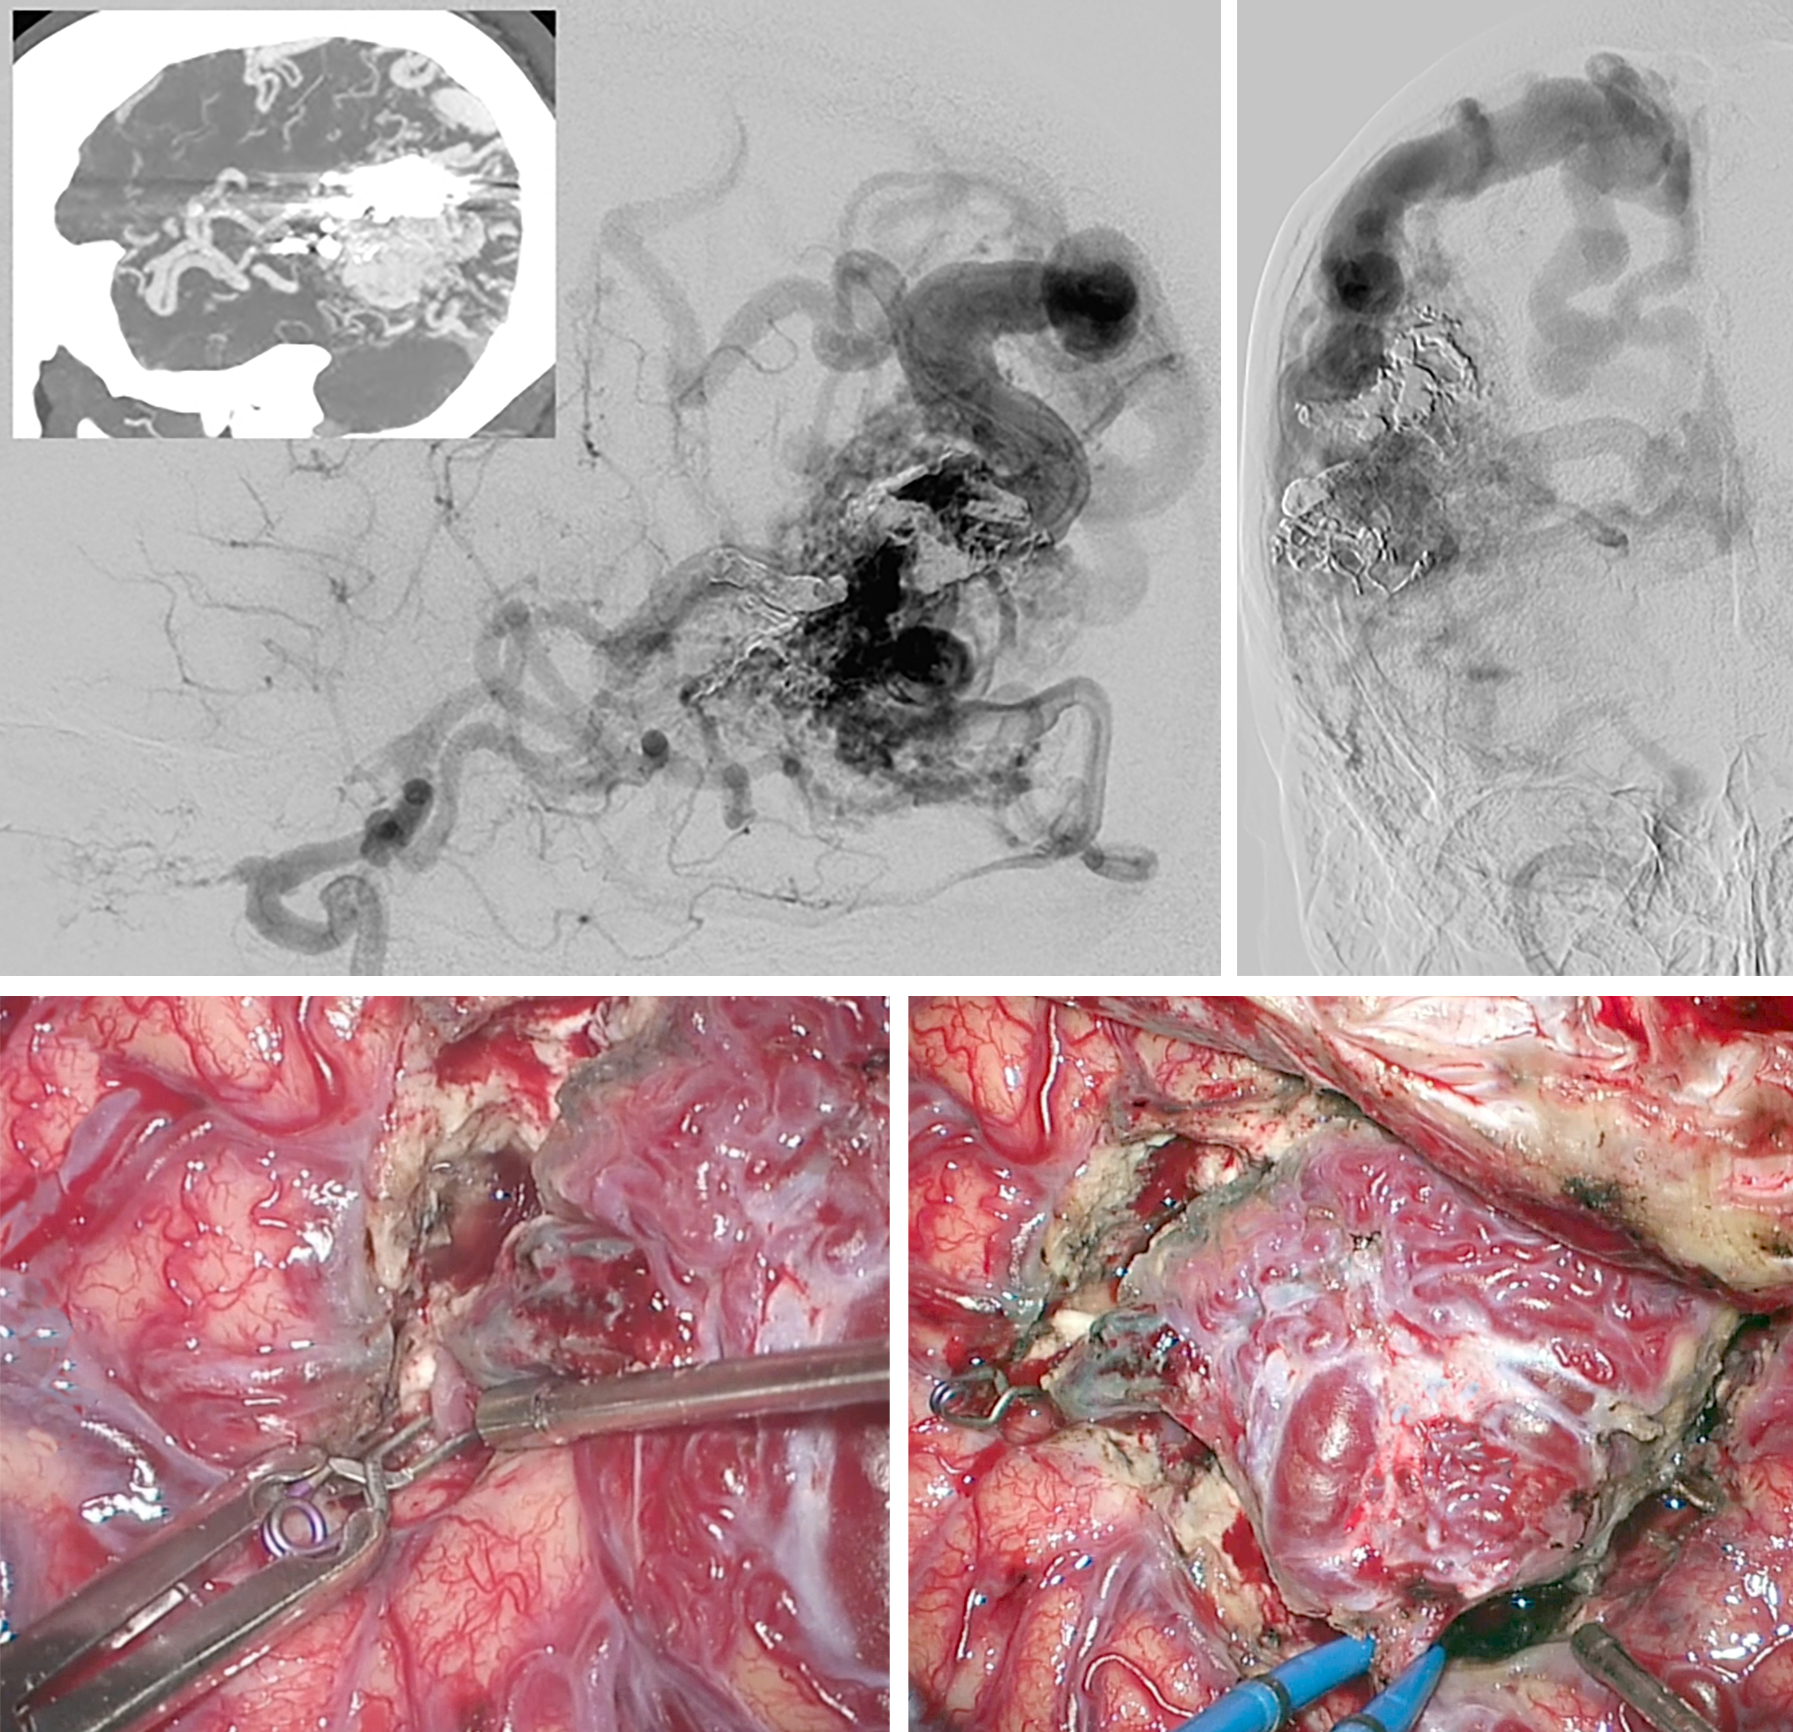 Figure 5: A large complex right-sided lateral temporoparietal AVM is shown (lateral and anteroposterior ICA injections-upper images). The MCA feeders (left lower image) and P2 feeders were clipped and transected. Temporary venous occlusion (right lower photo) confirmed adequate nidal devascularization, after which the AVM was delivered.